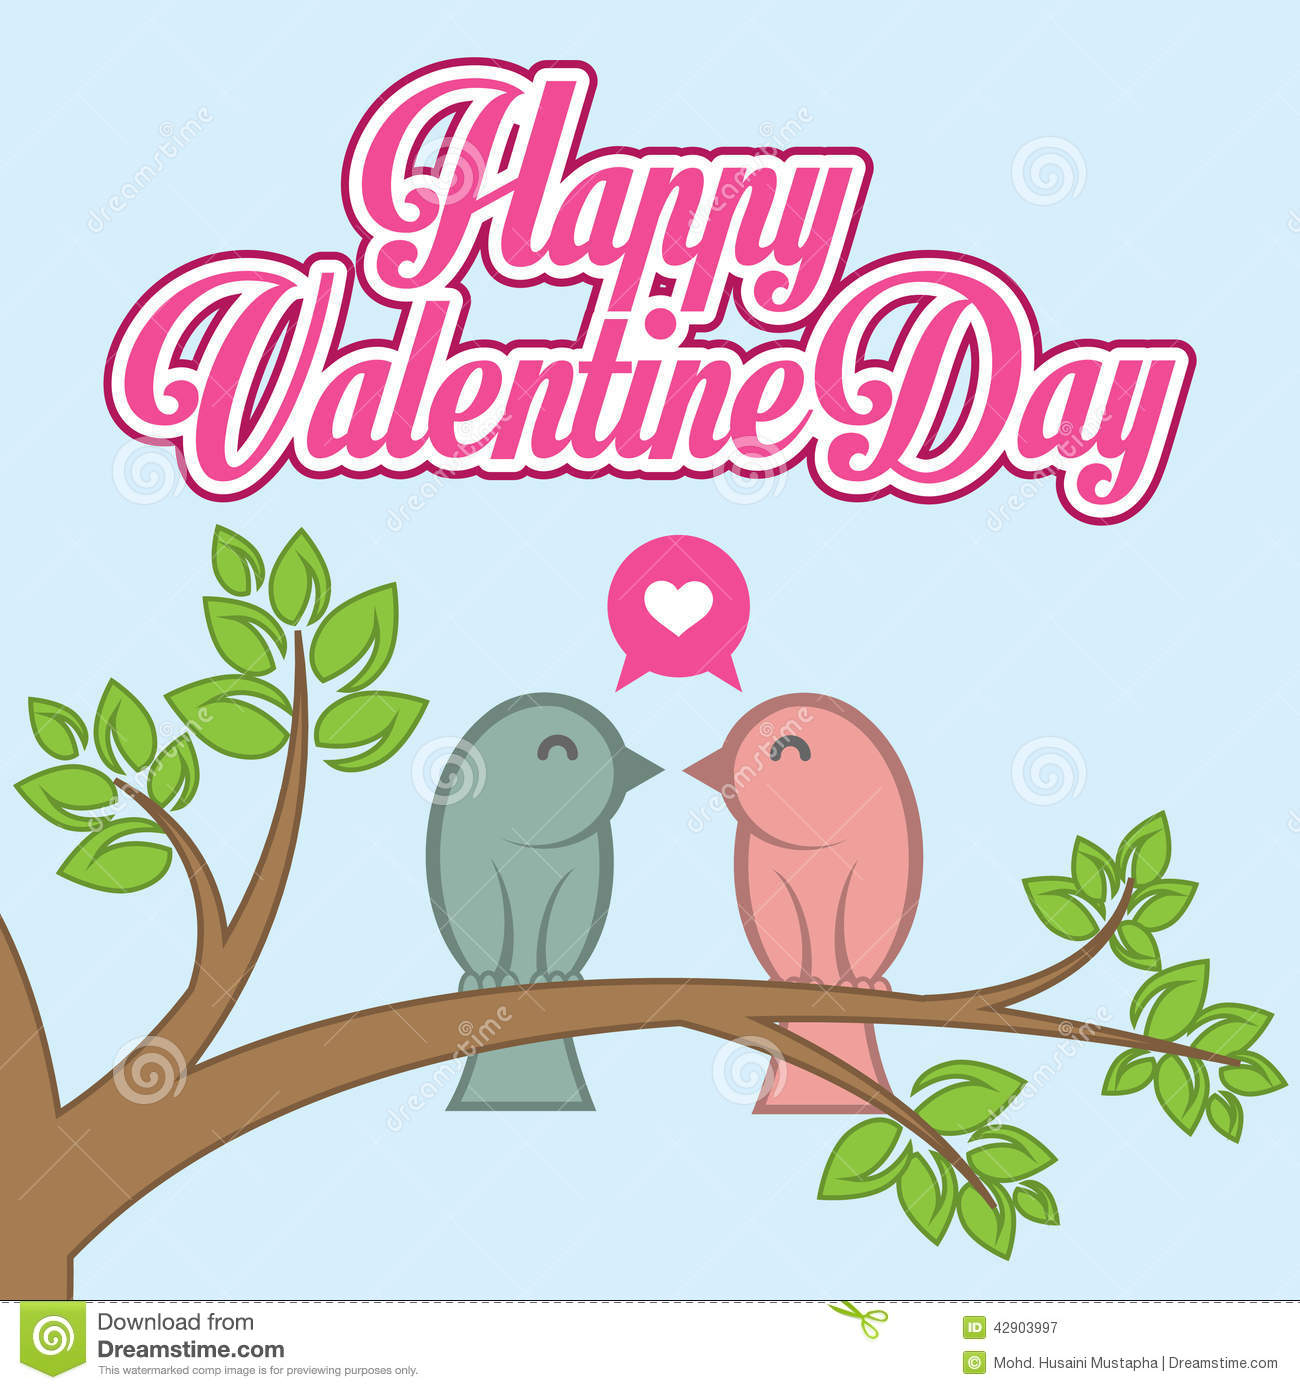 Flat valentine day vector card with birds in love on tree